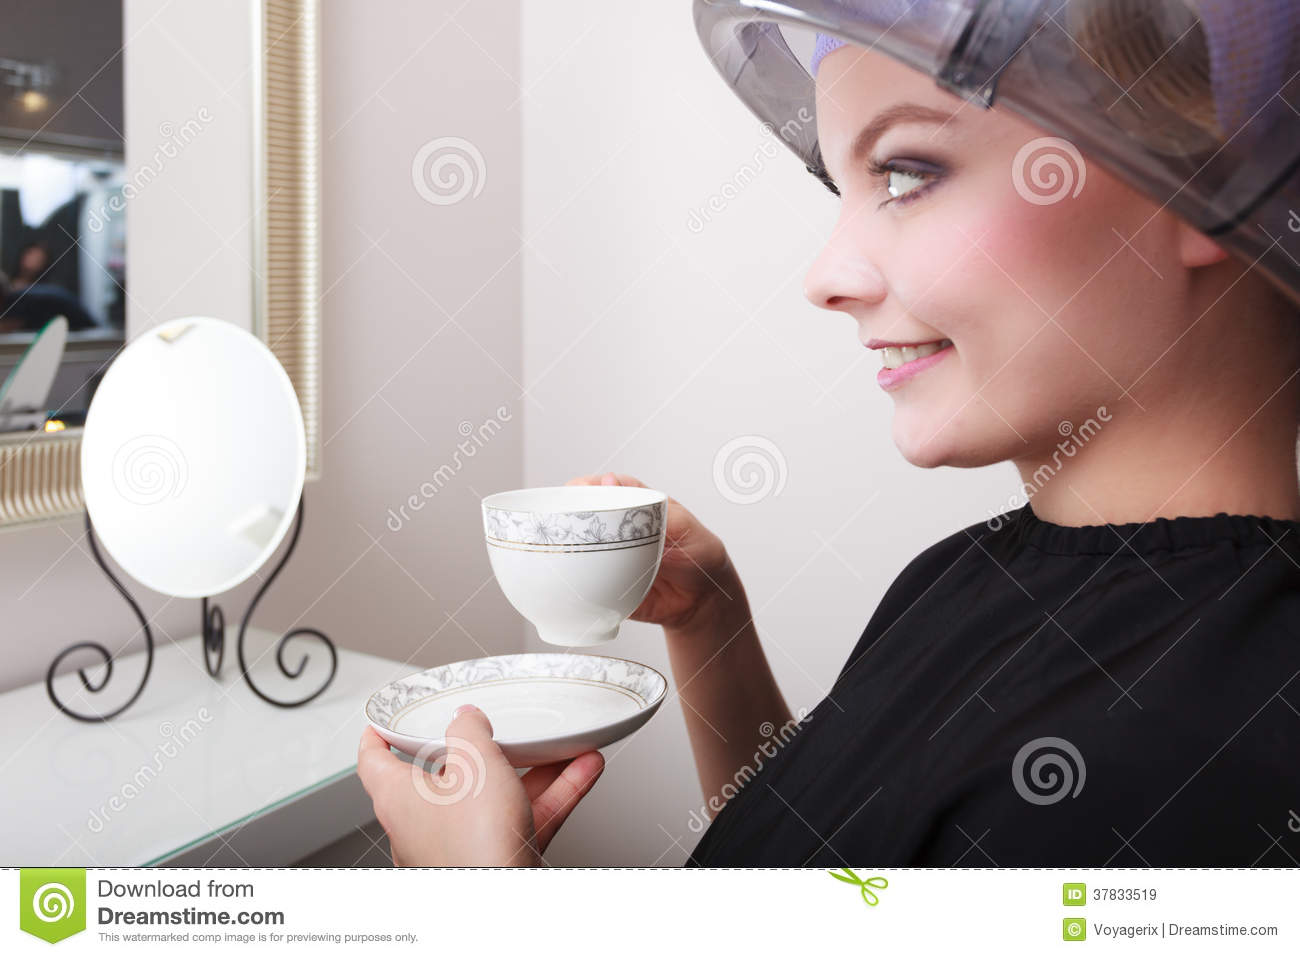 Woman Client Drinking Coffee Tea In Hairdressing Salon Girl In Hair Rollers Curlers With